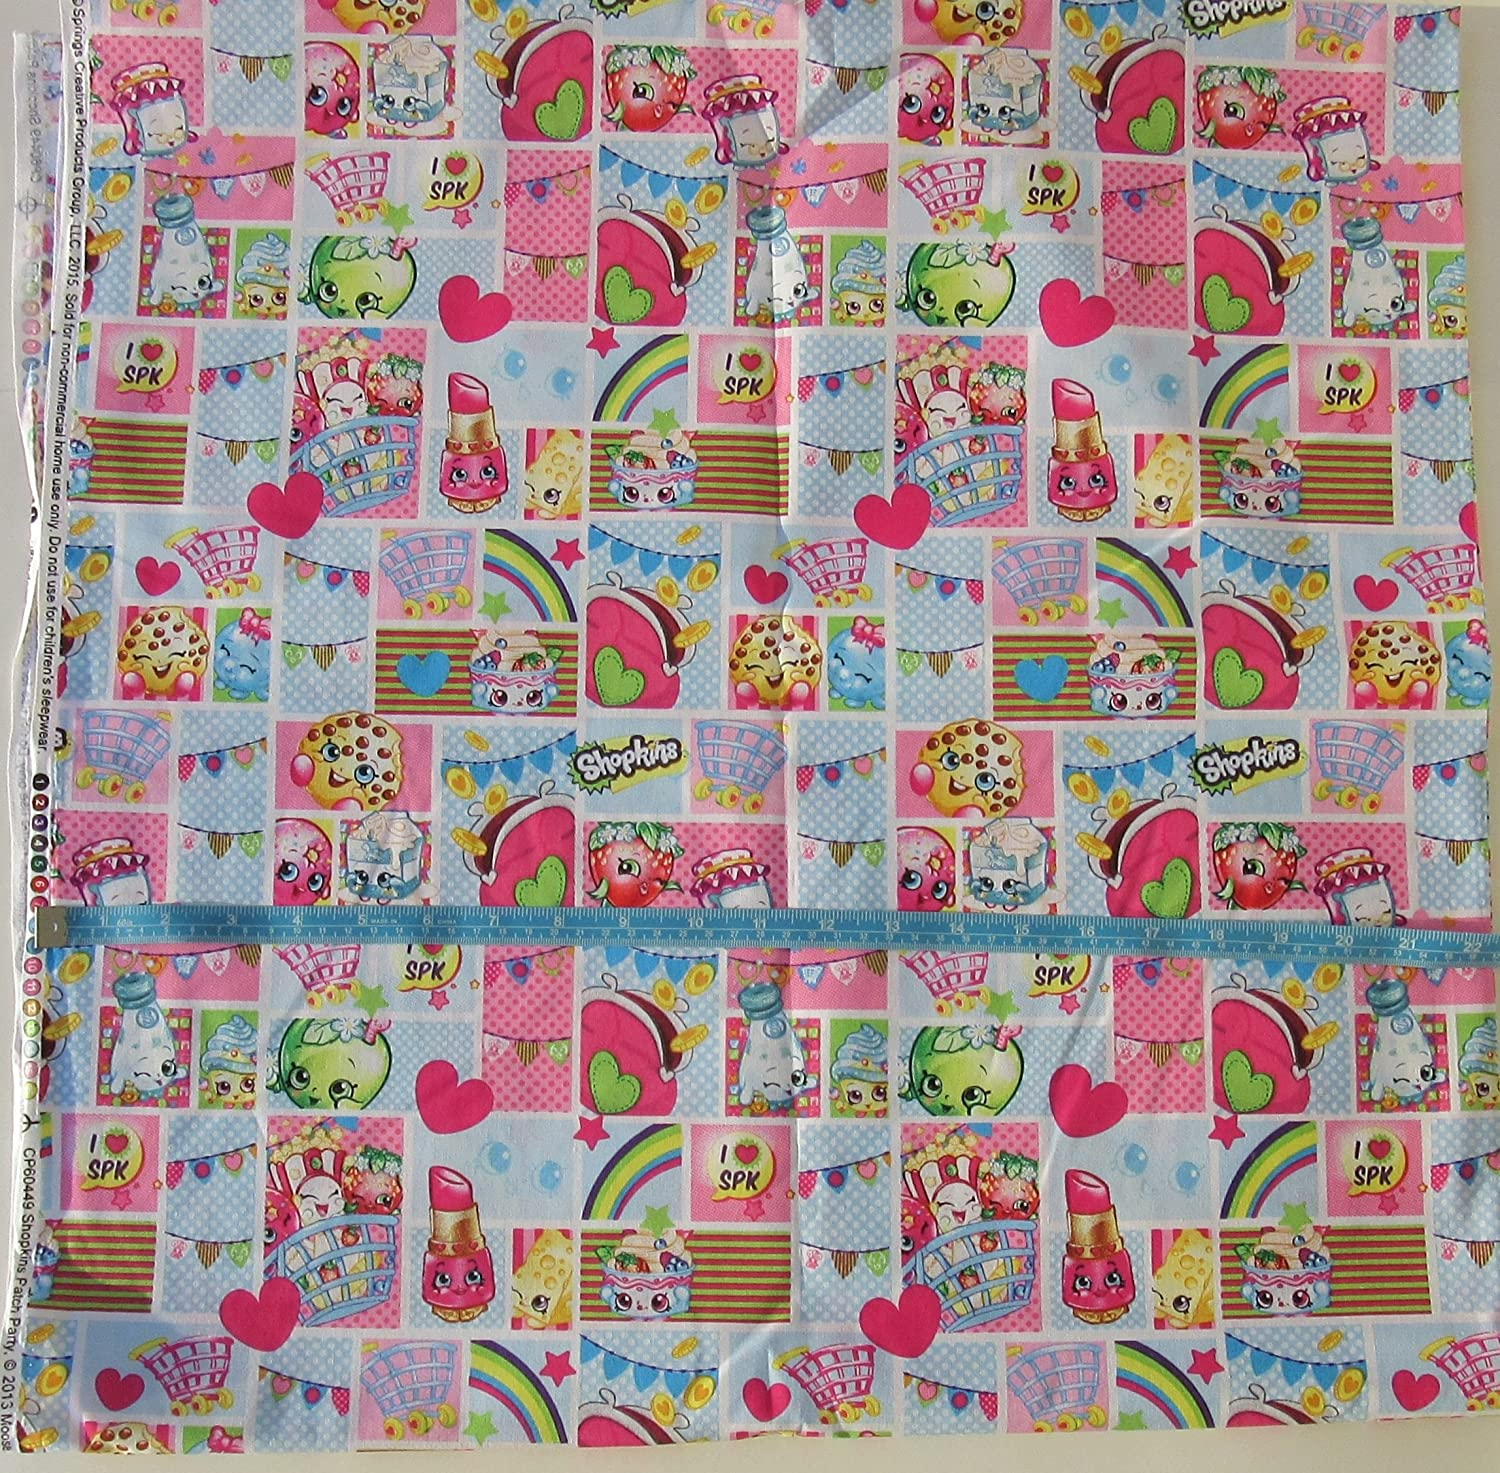 Shopkins - CP60449 Shopkins Patch Party - Cotton Fabric - Squares Design - 44 Inches Wide - Sold by the Yard